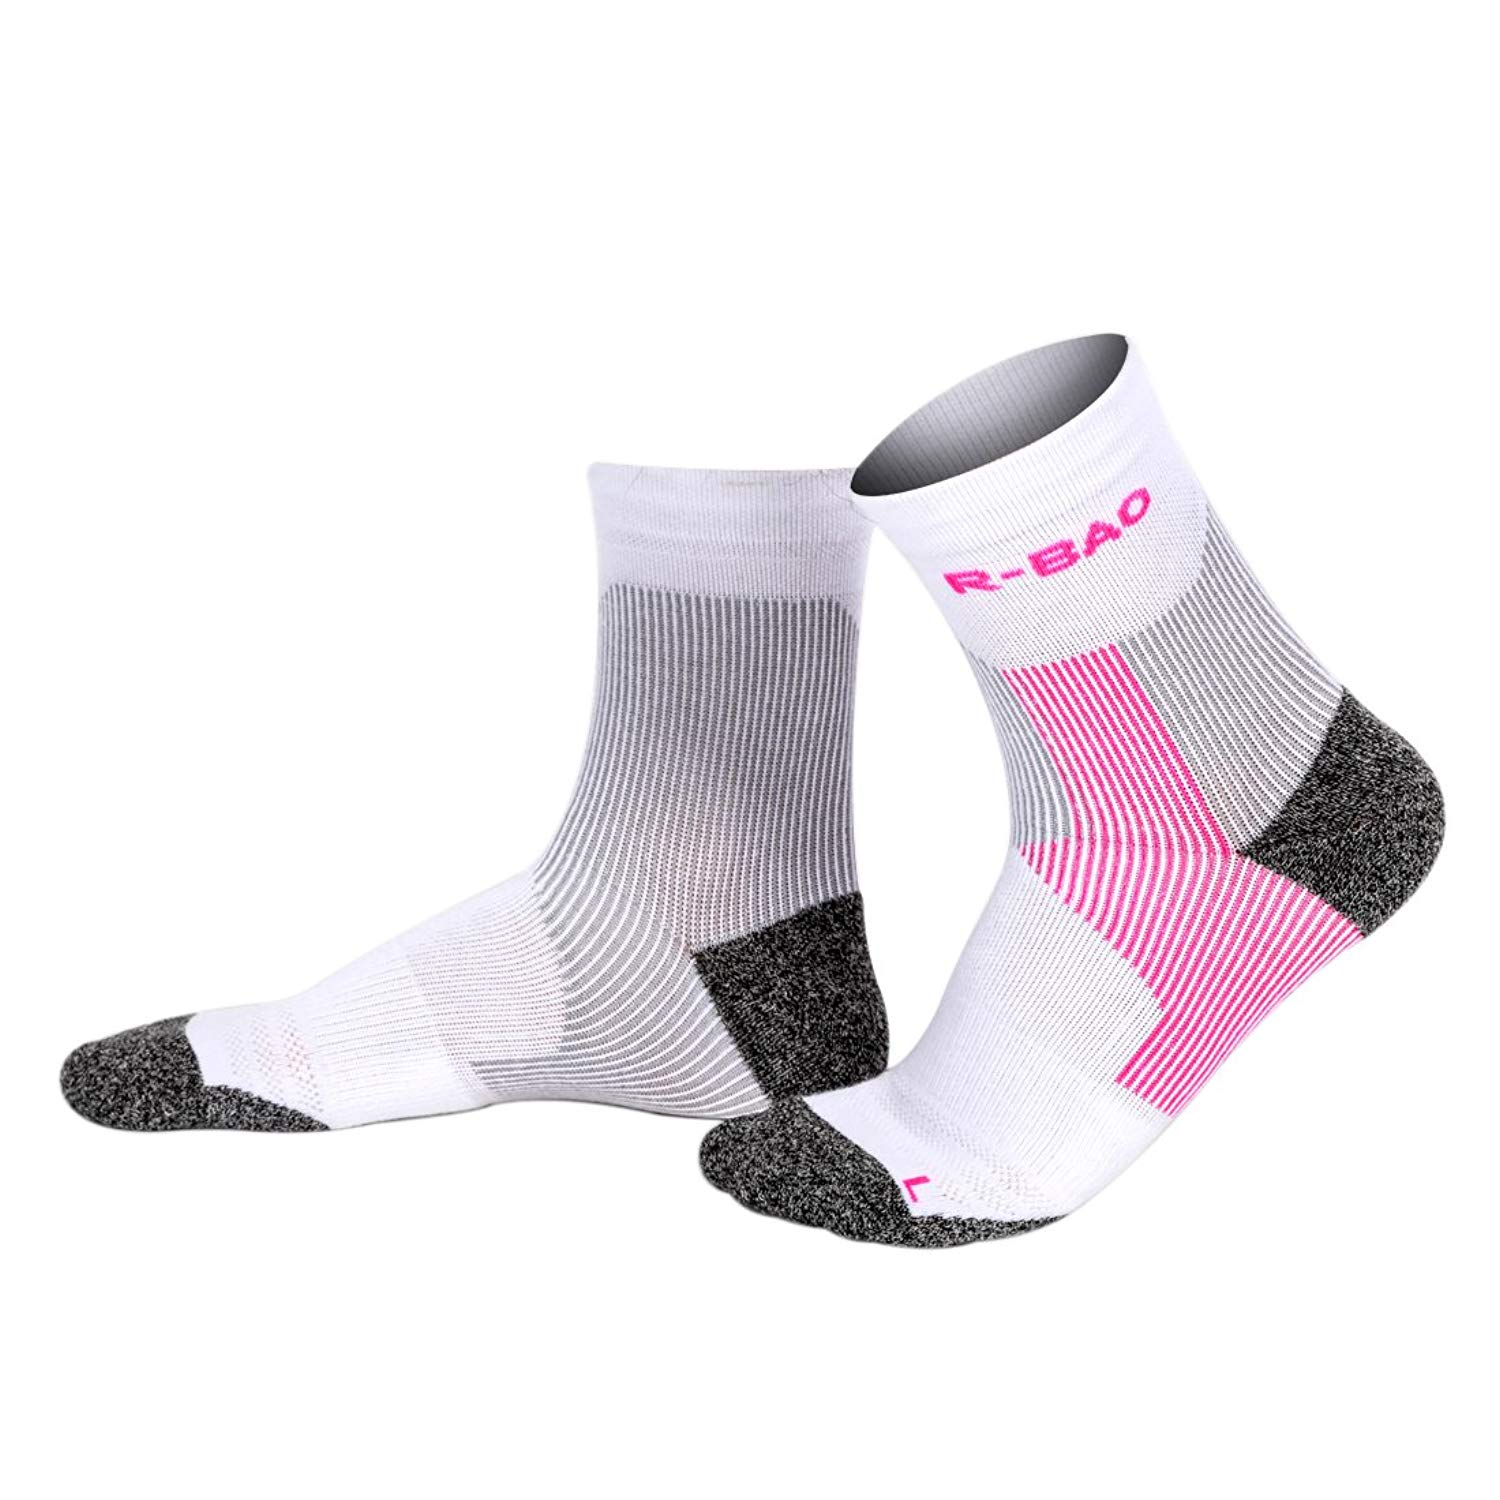 7c3addbb26e Get Quotations · Houlife Women s Ankle Protection Cushioned Athletic Sports  Marathon Quarter Compression Running Socks